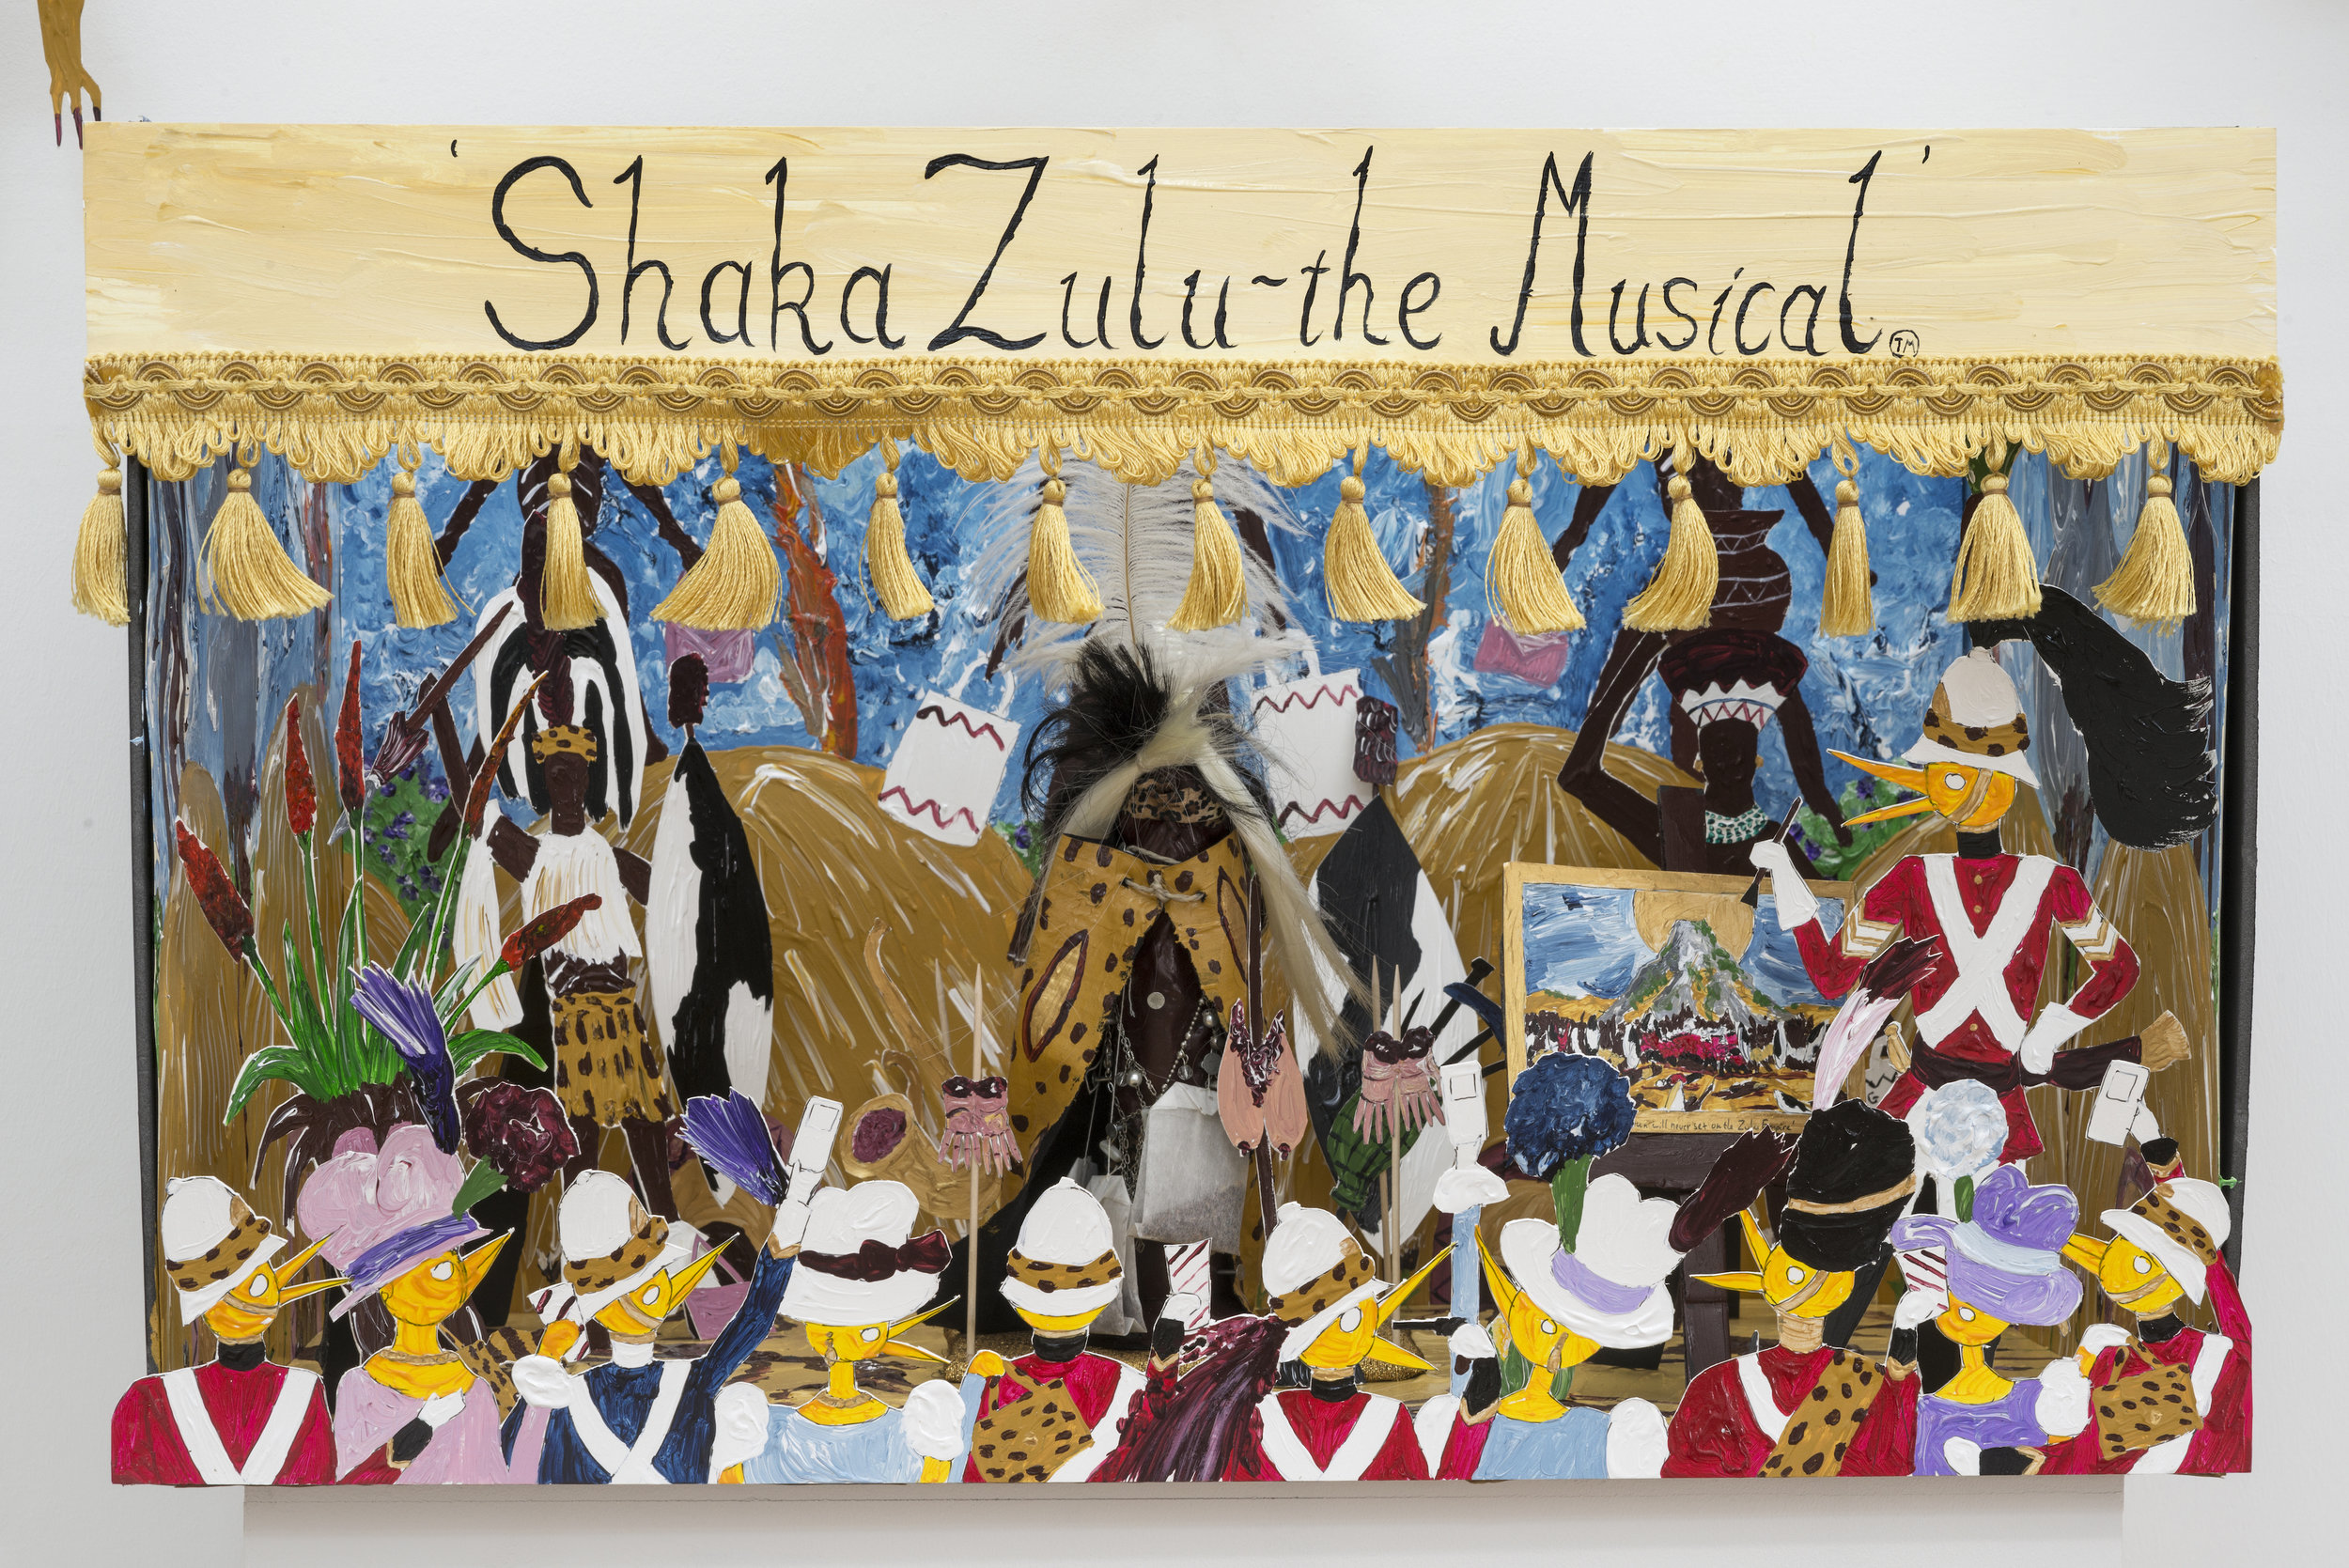 Andrew Gilbert,  Shaka Zulu - the Musical (model) , 2016, mixed media, 86 x 74 x 55 cm. Copyright: © 2017 the artist. Courtesy of SPERLING, Munich.